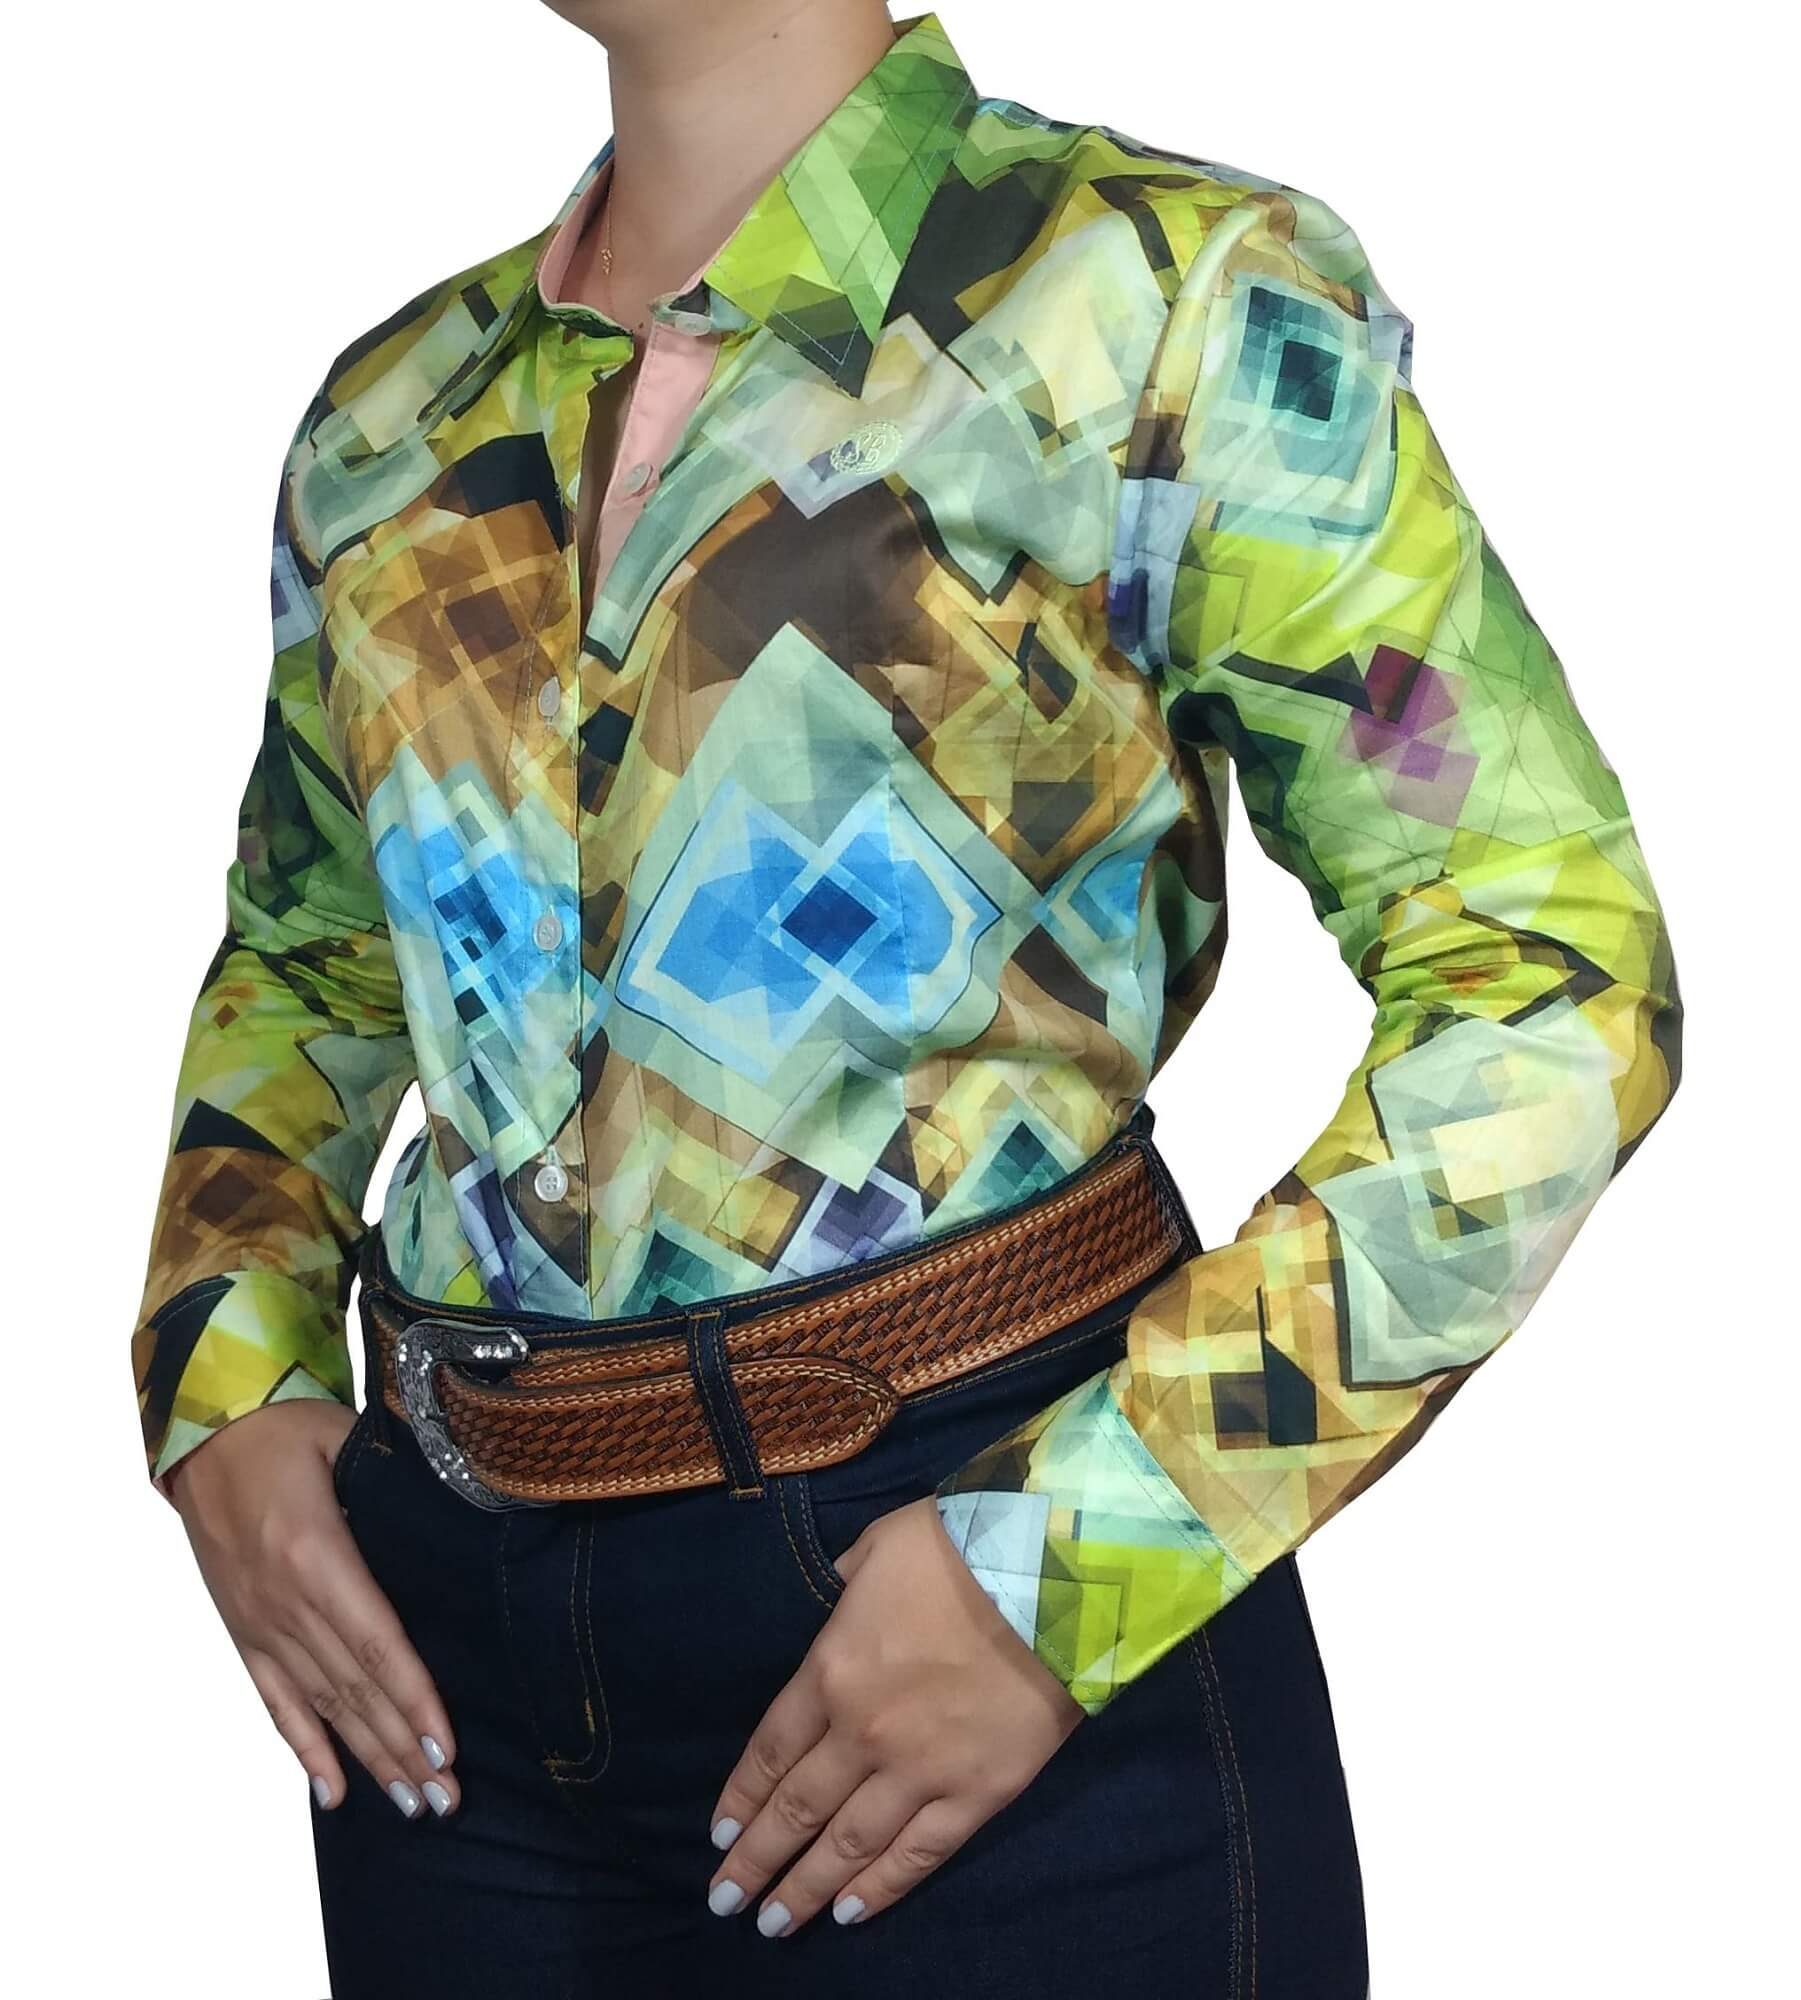 Camisa Feminina Smith Brothers Ref. Estampa Losangos Coloridos